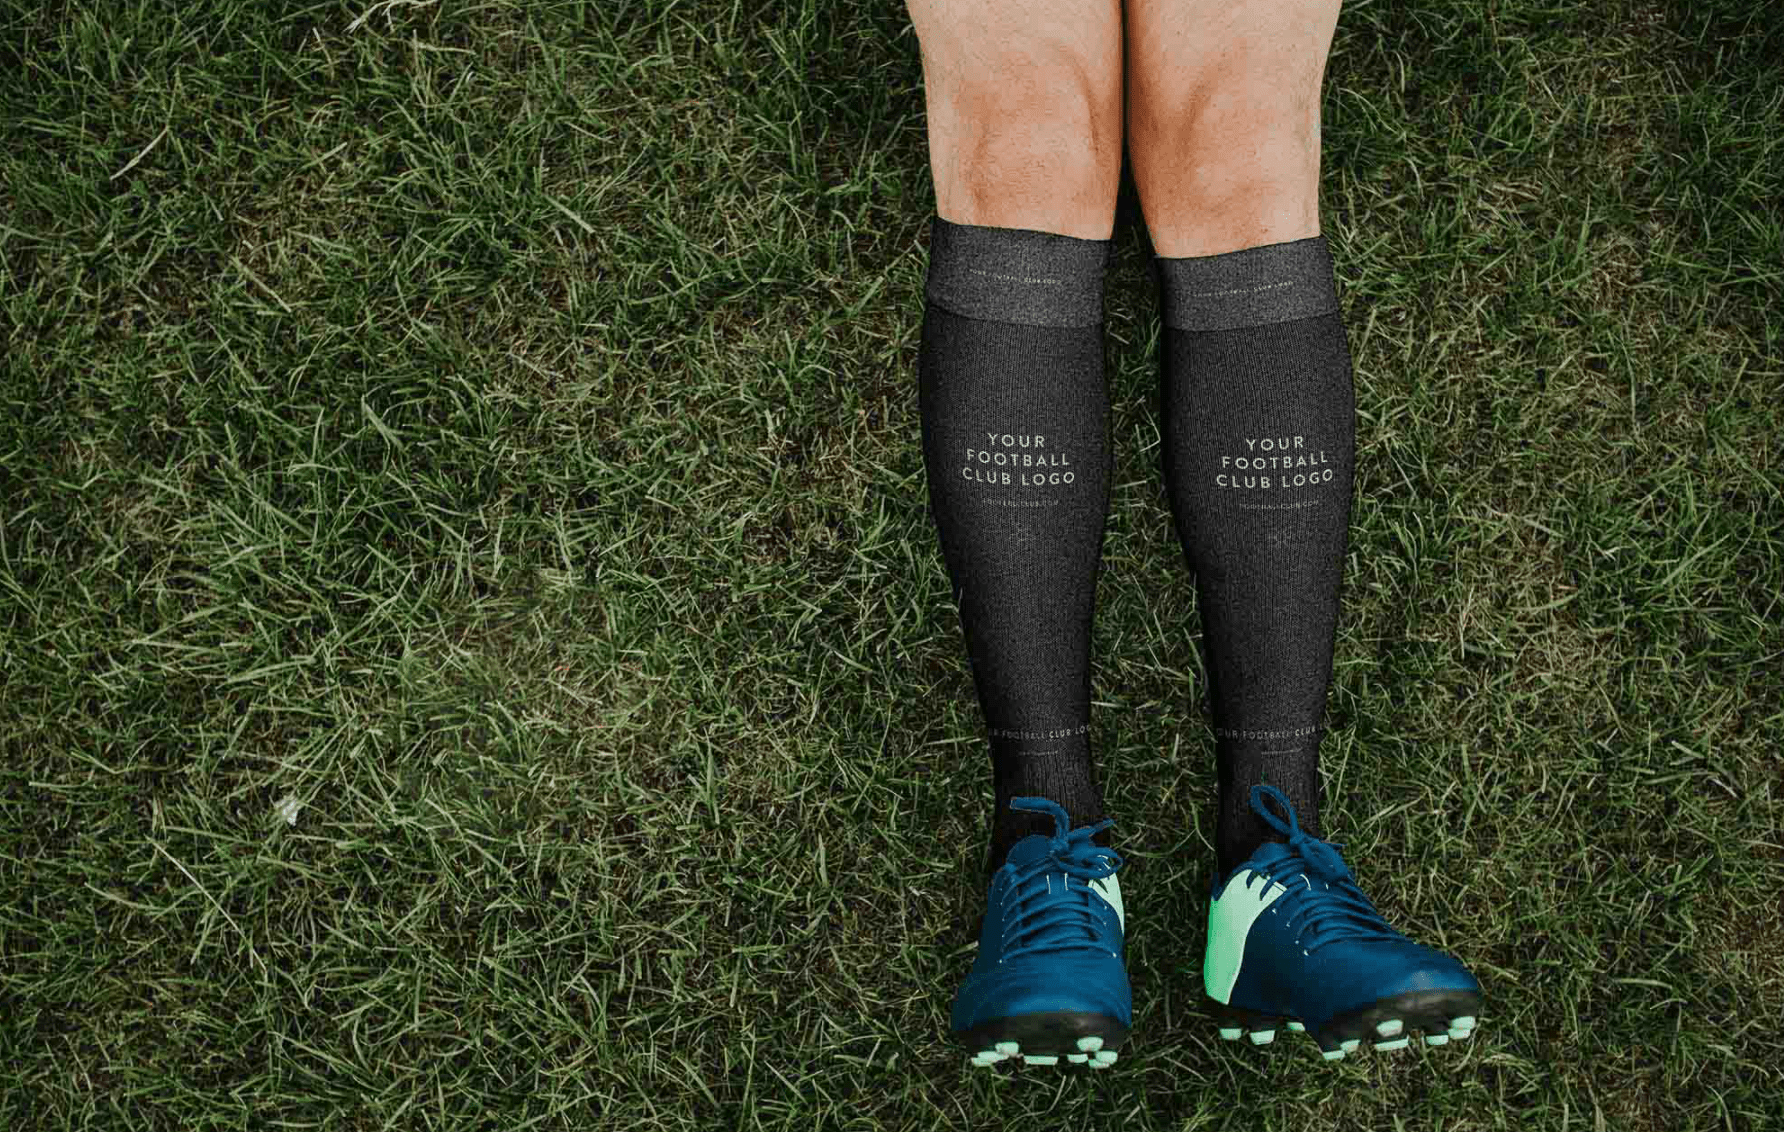 How to Get Football Socks For My Club?